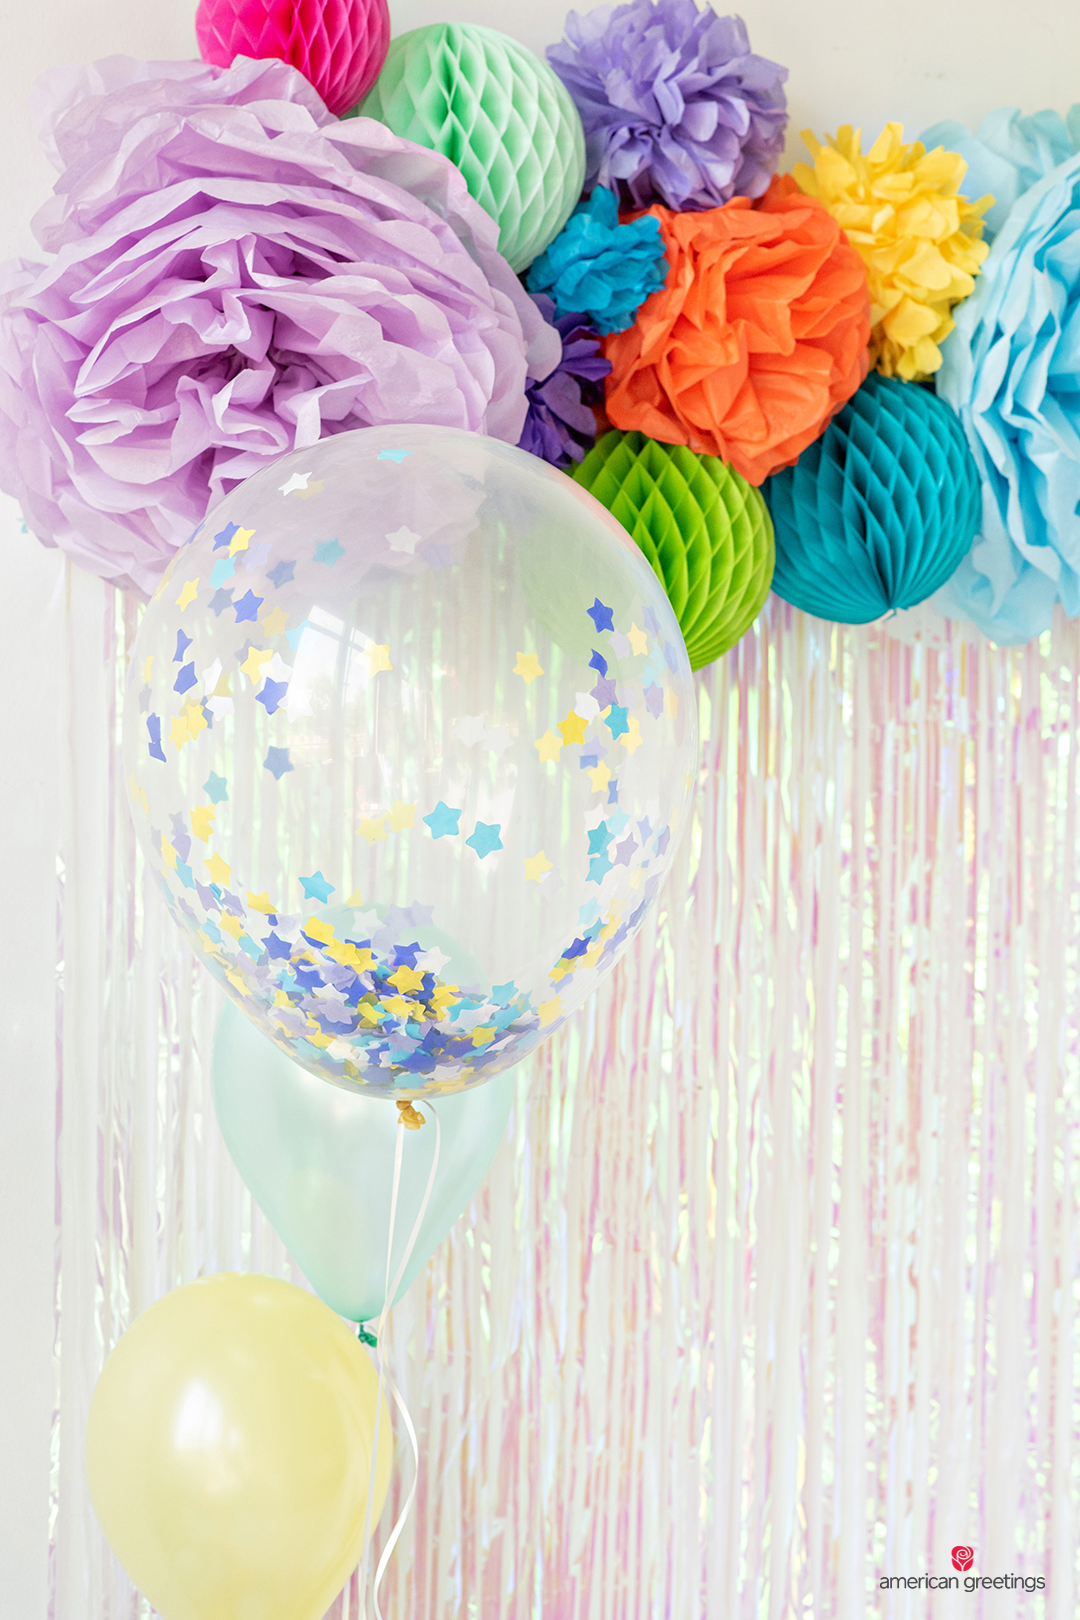 Oversized balloons near some tissue papper pom-poms in various colors and sizes.